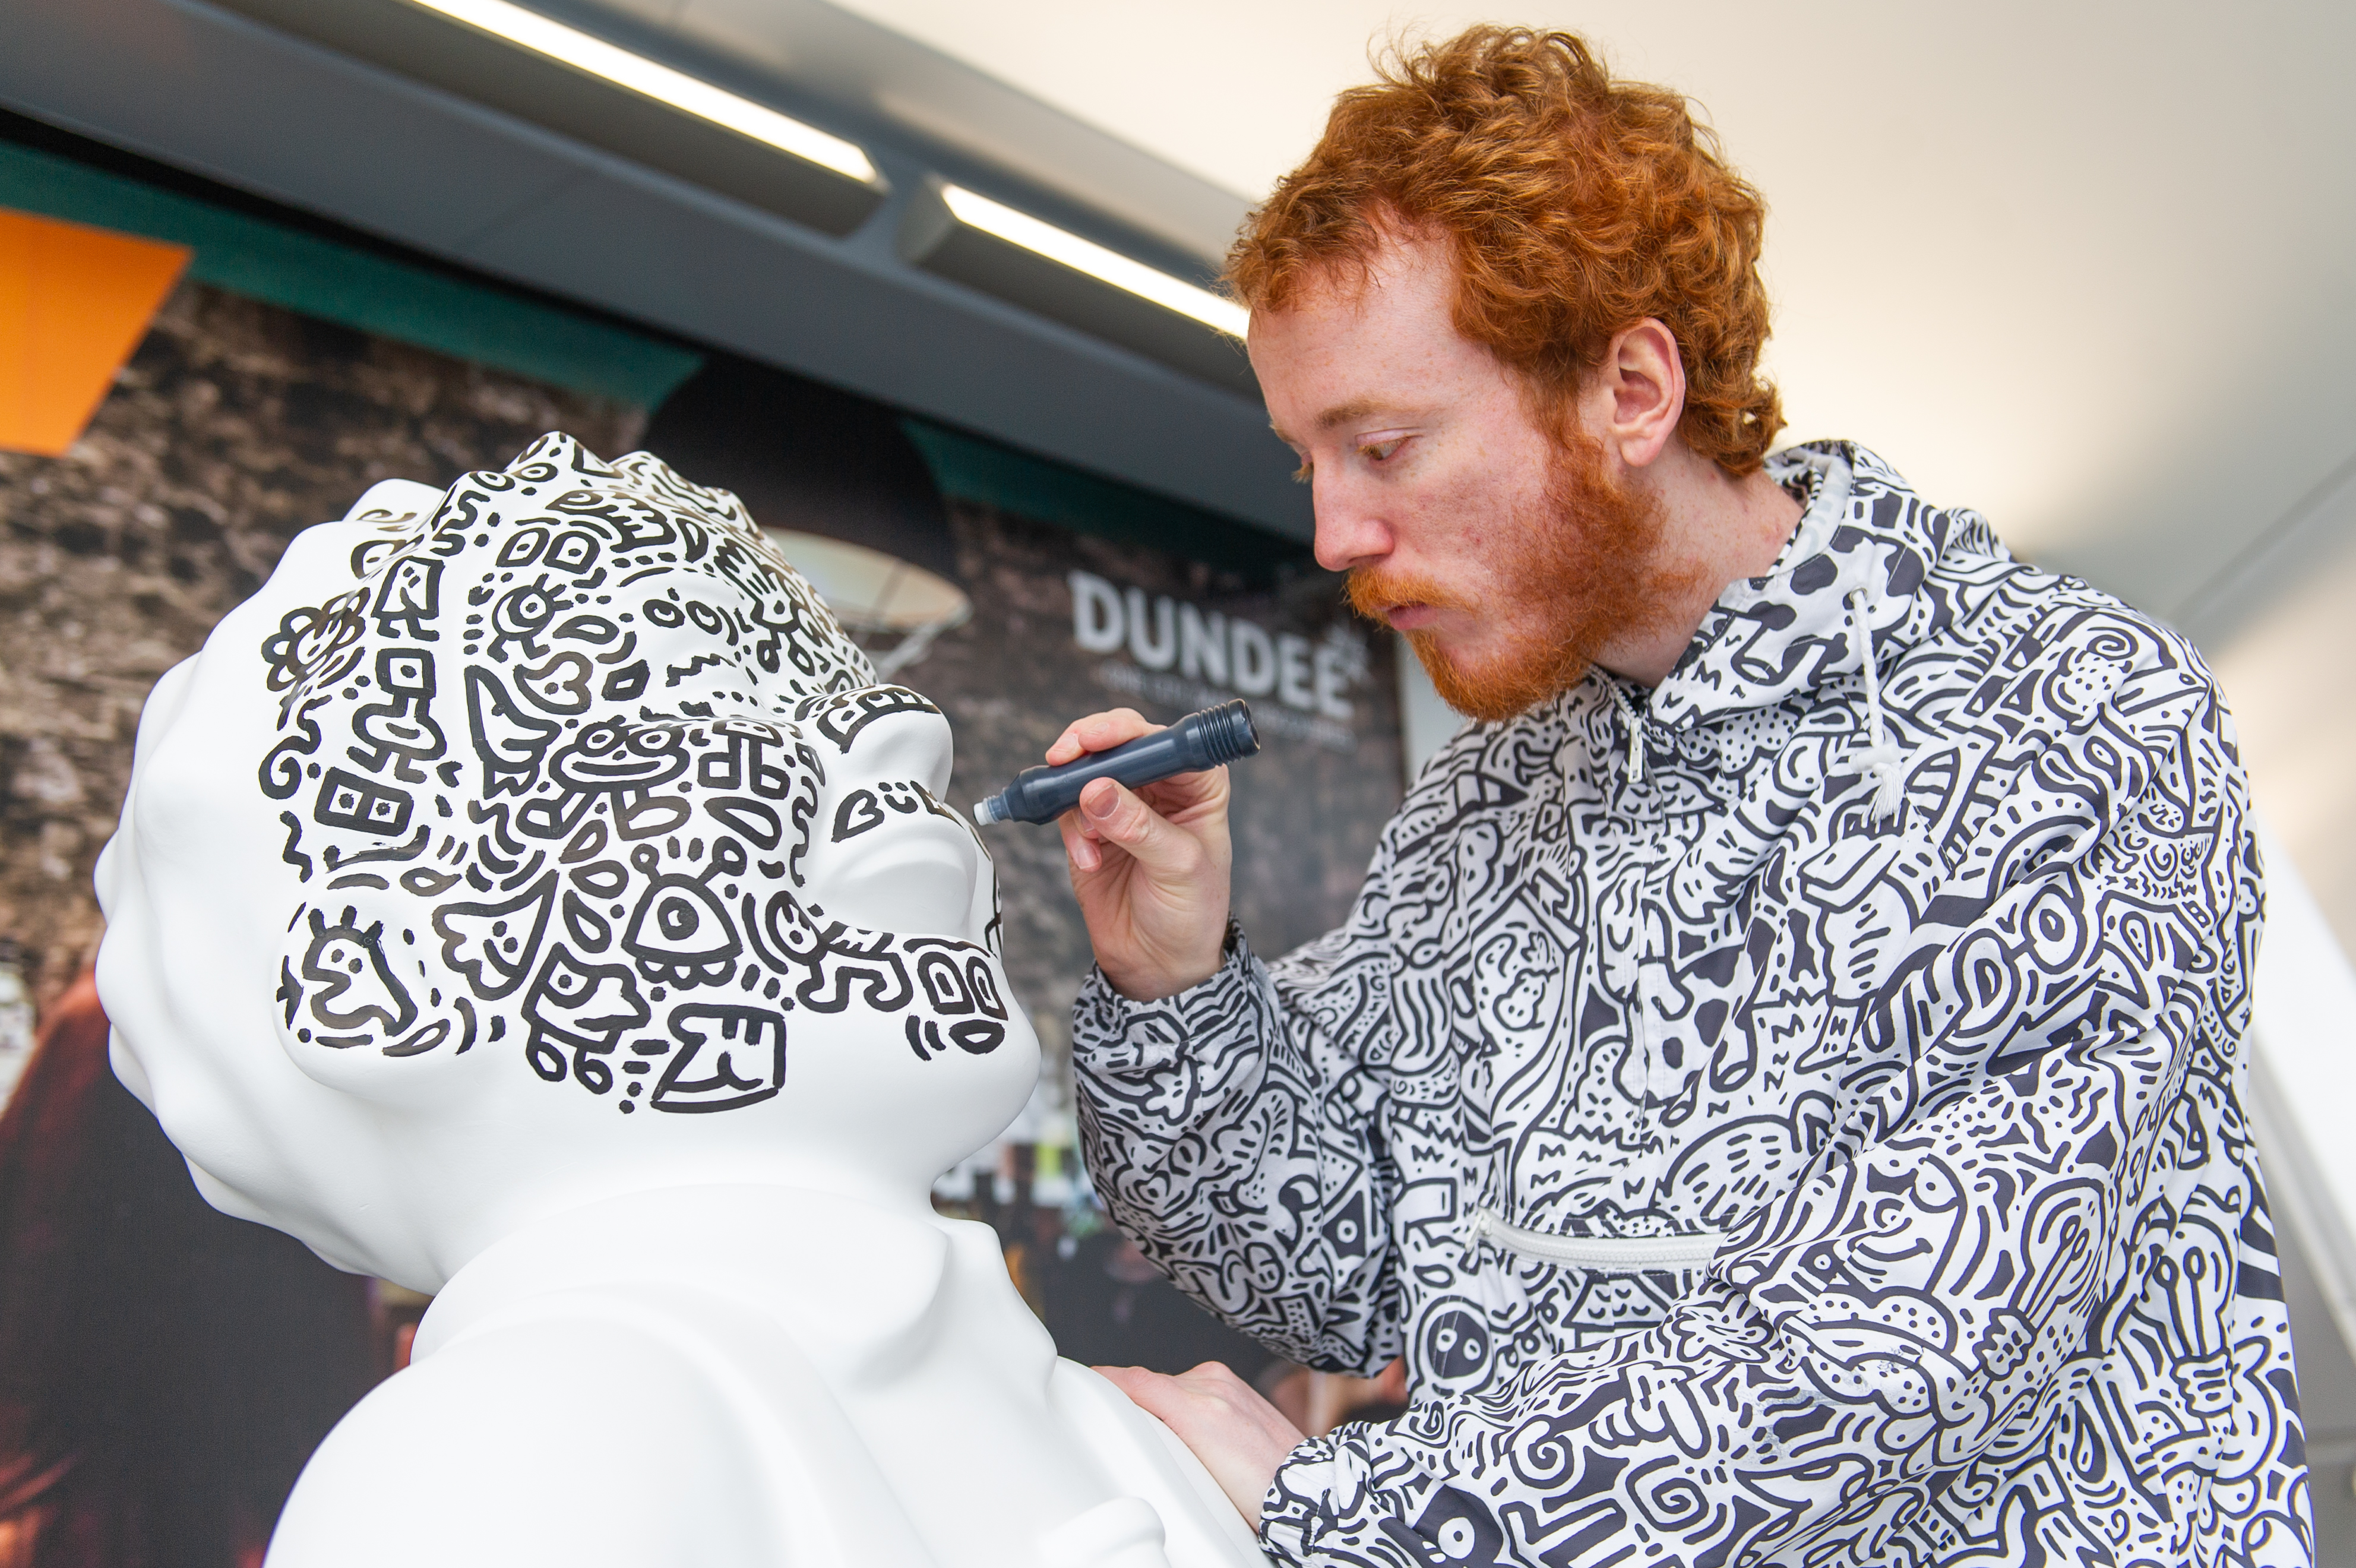 Mr Doodle at work on the Oor Wullie statue